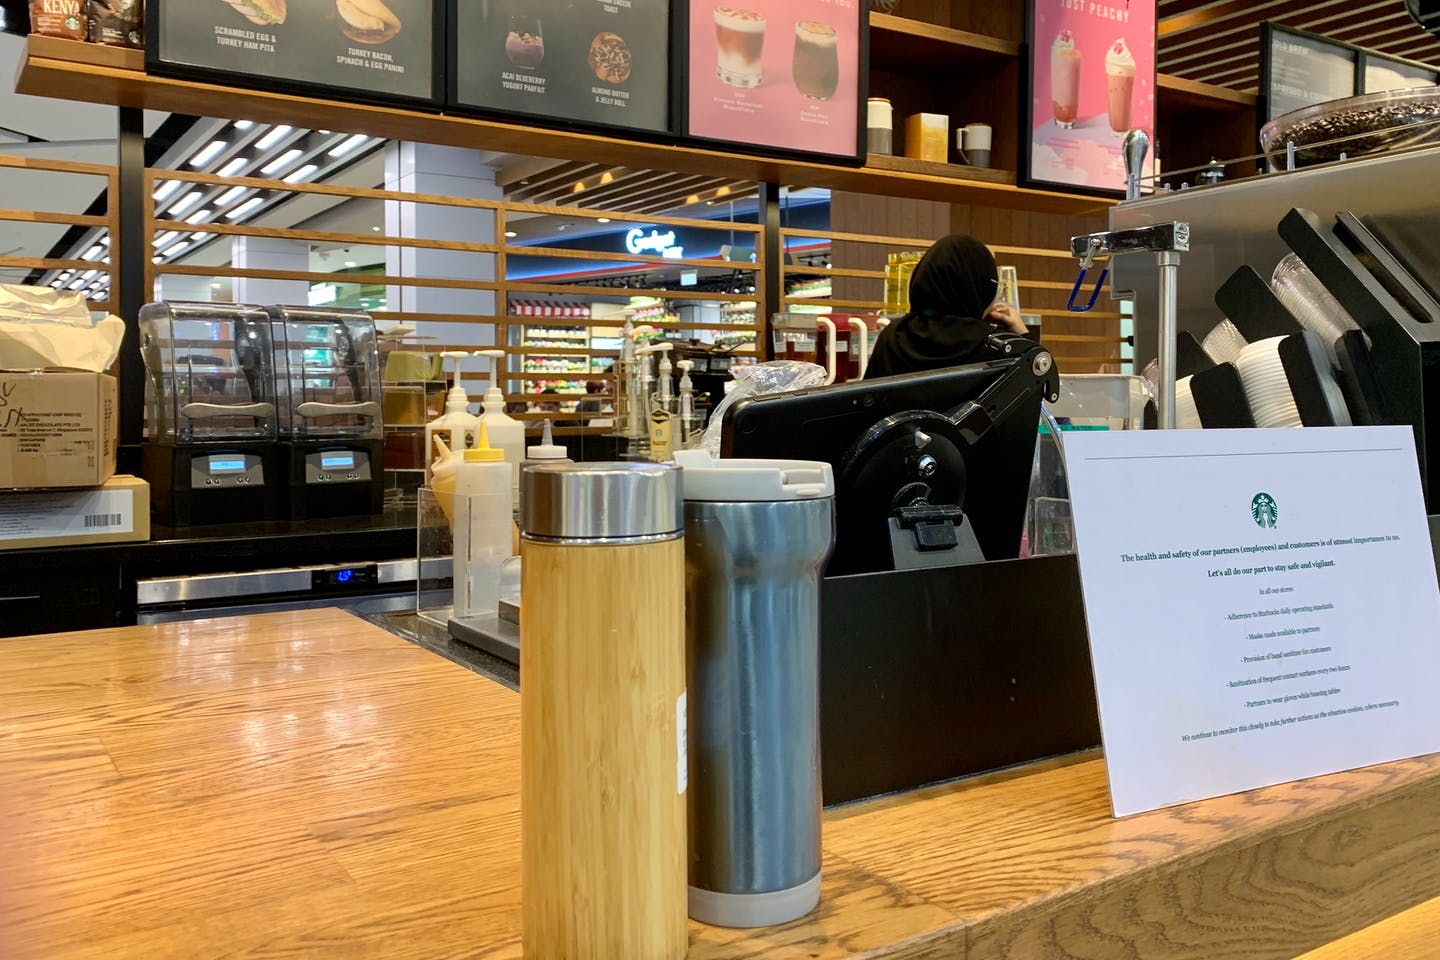 Reuseable drink containers at a Starbucks outlet in Singapore, where BYO is still allowed. Starbucks has banned BYO in some countries, but not in others. Image: Eco-Business